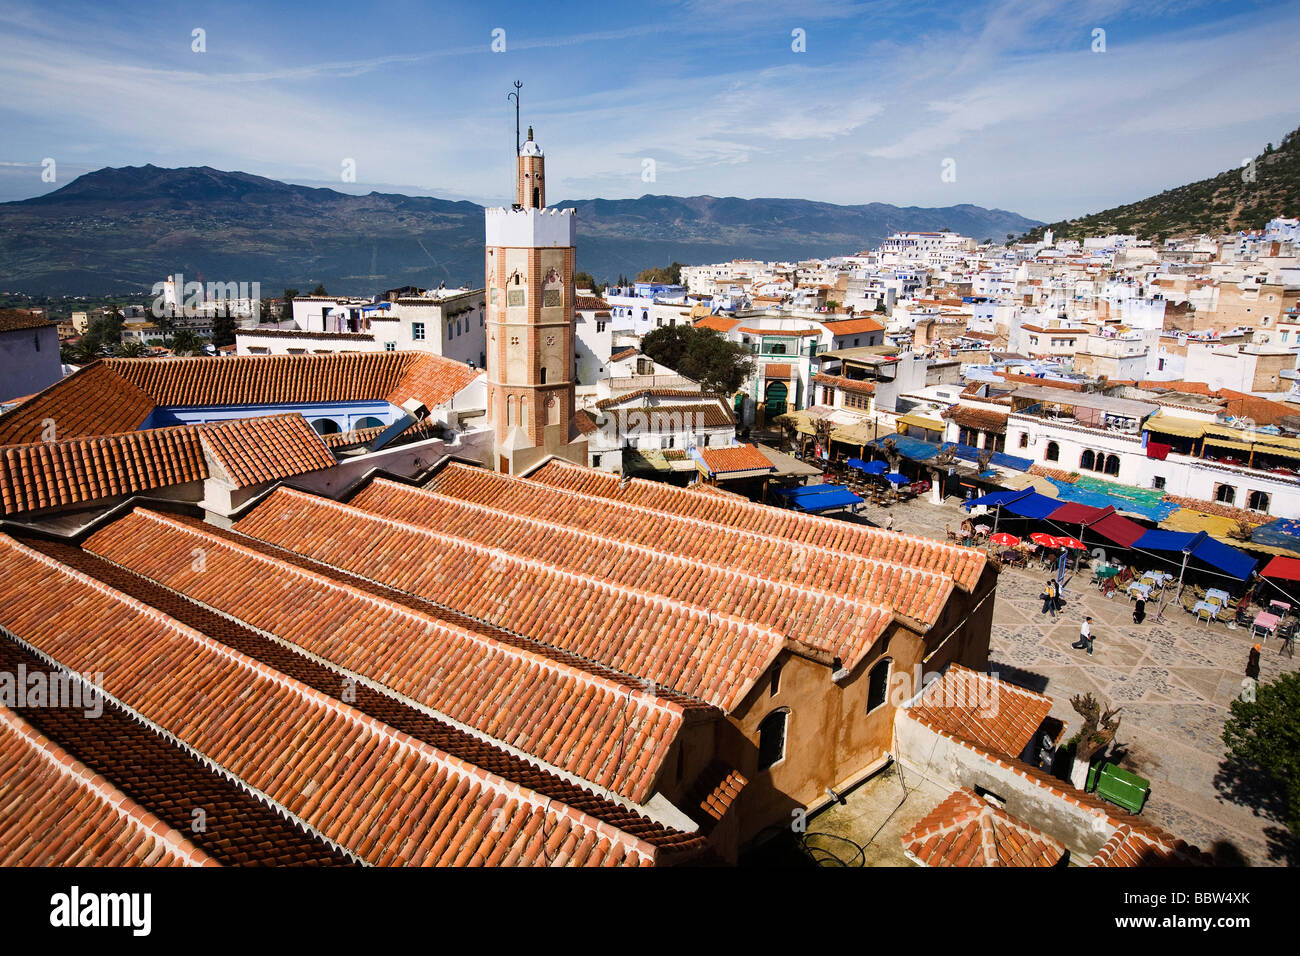 View over Grand Mosque, Chefchaouen, Morocco, North Africa - Stock Image